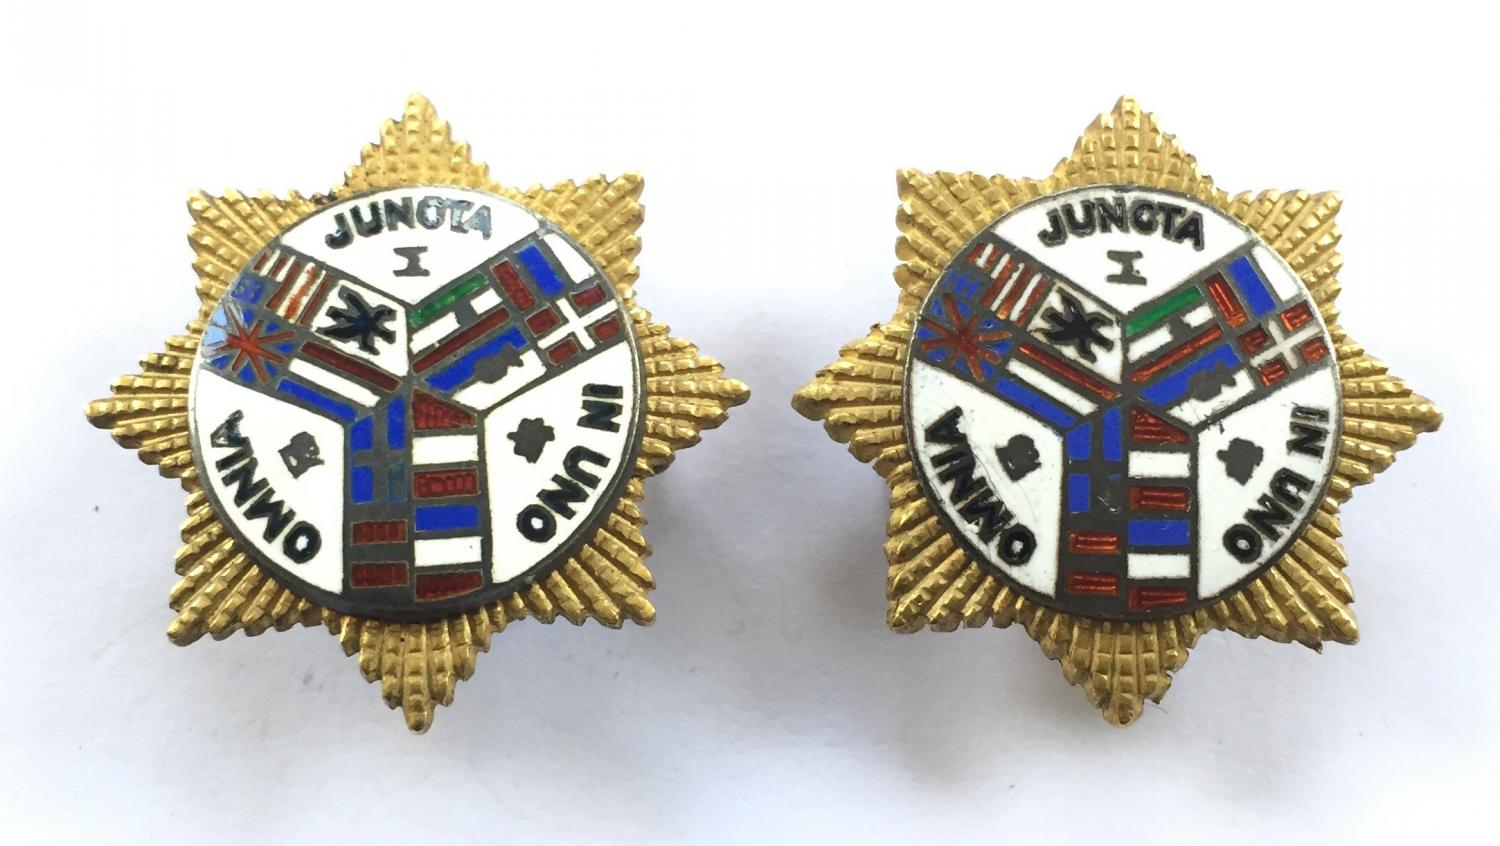 Shanghai Volunteer Corps collars